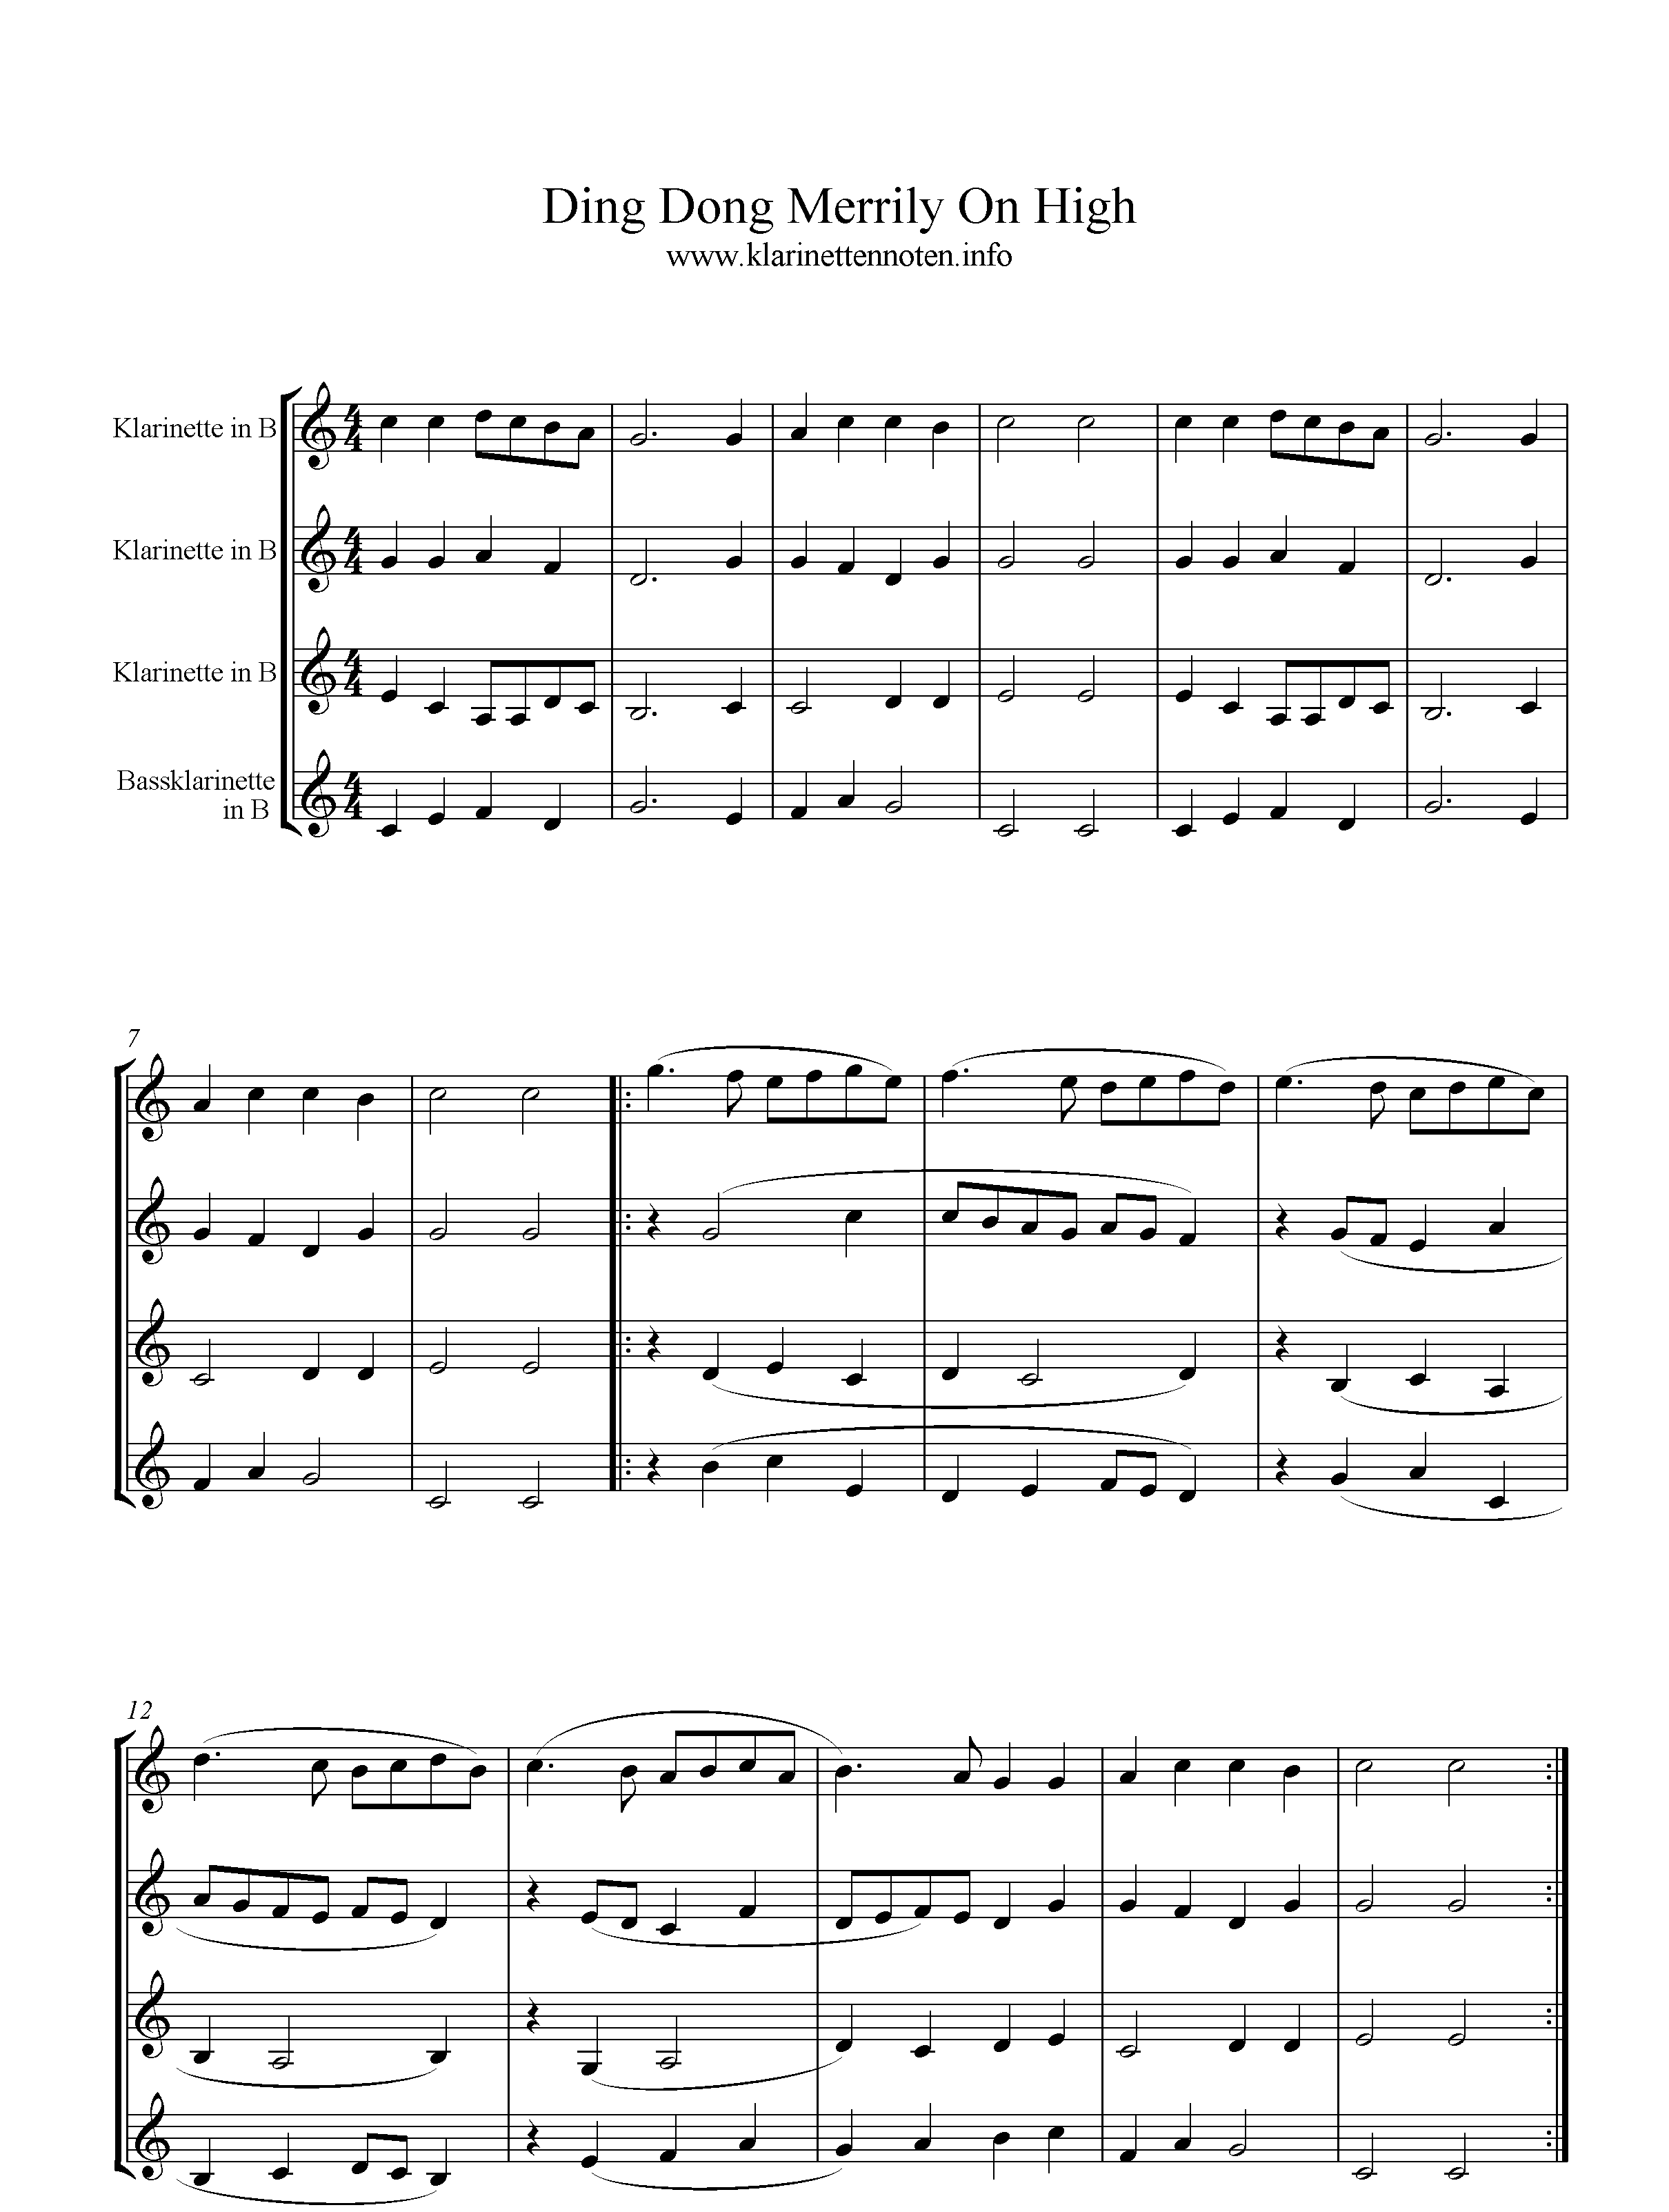 Ding Dong Merrily On High, Quartet, sheetmusic; Clarinet